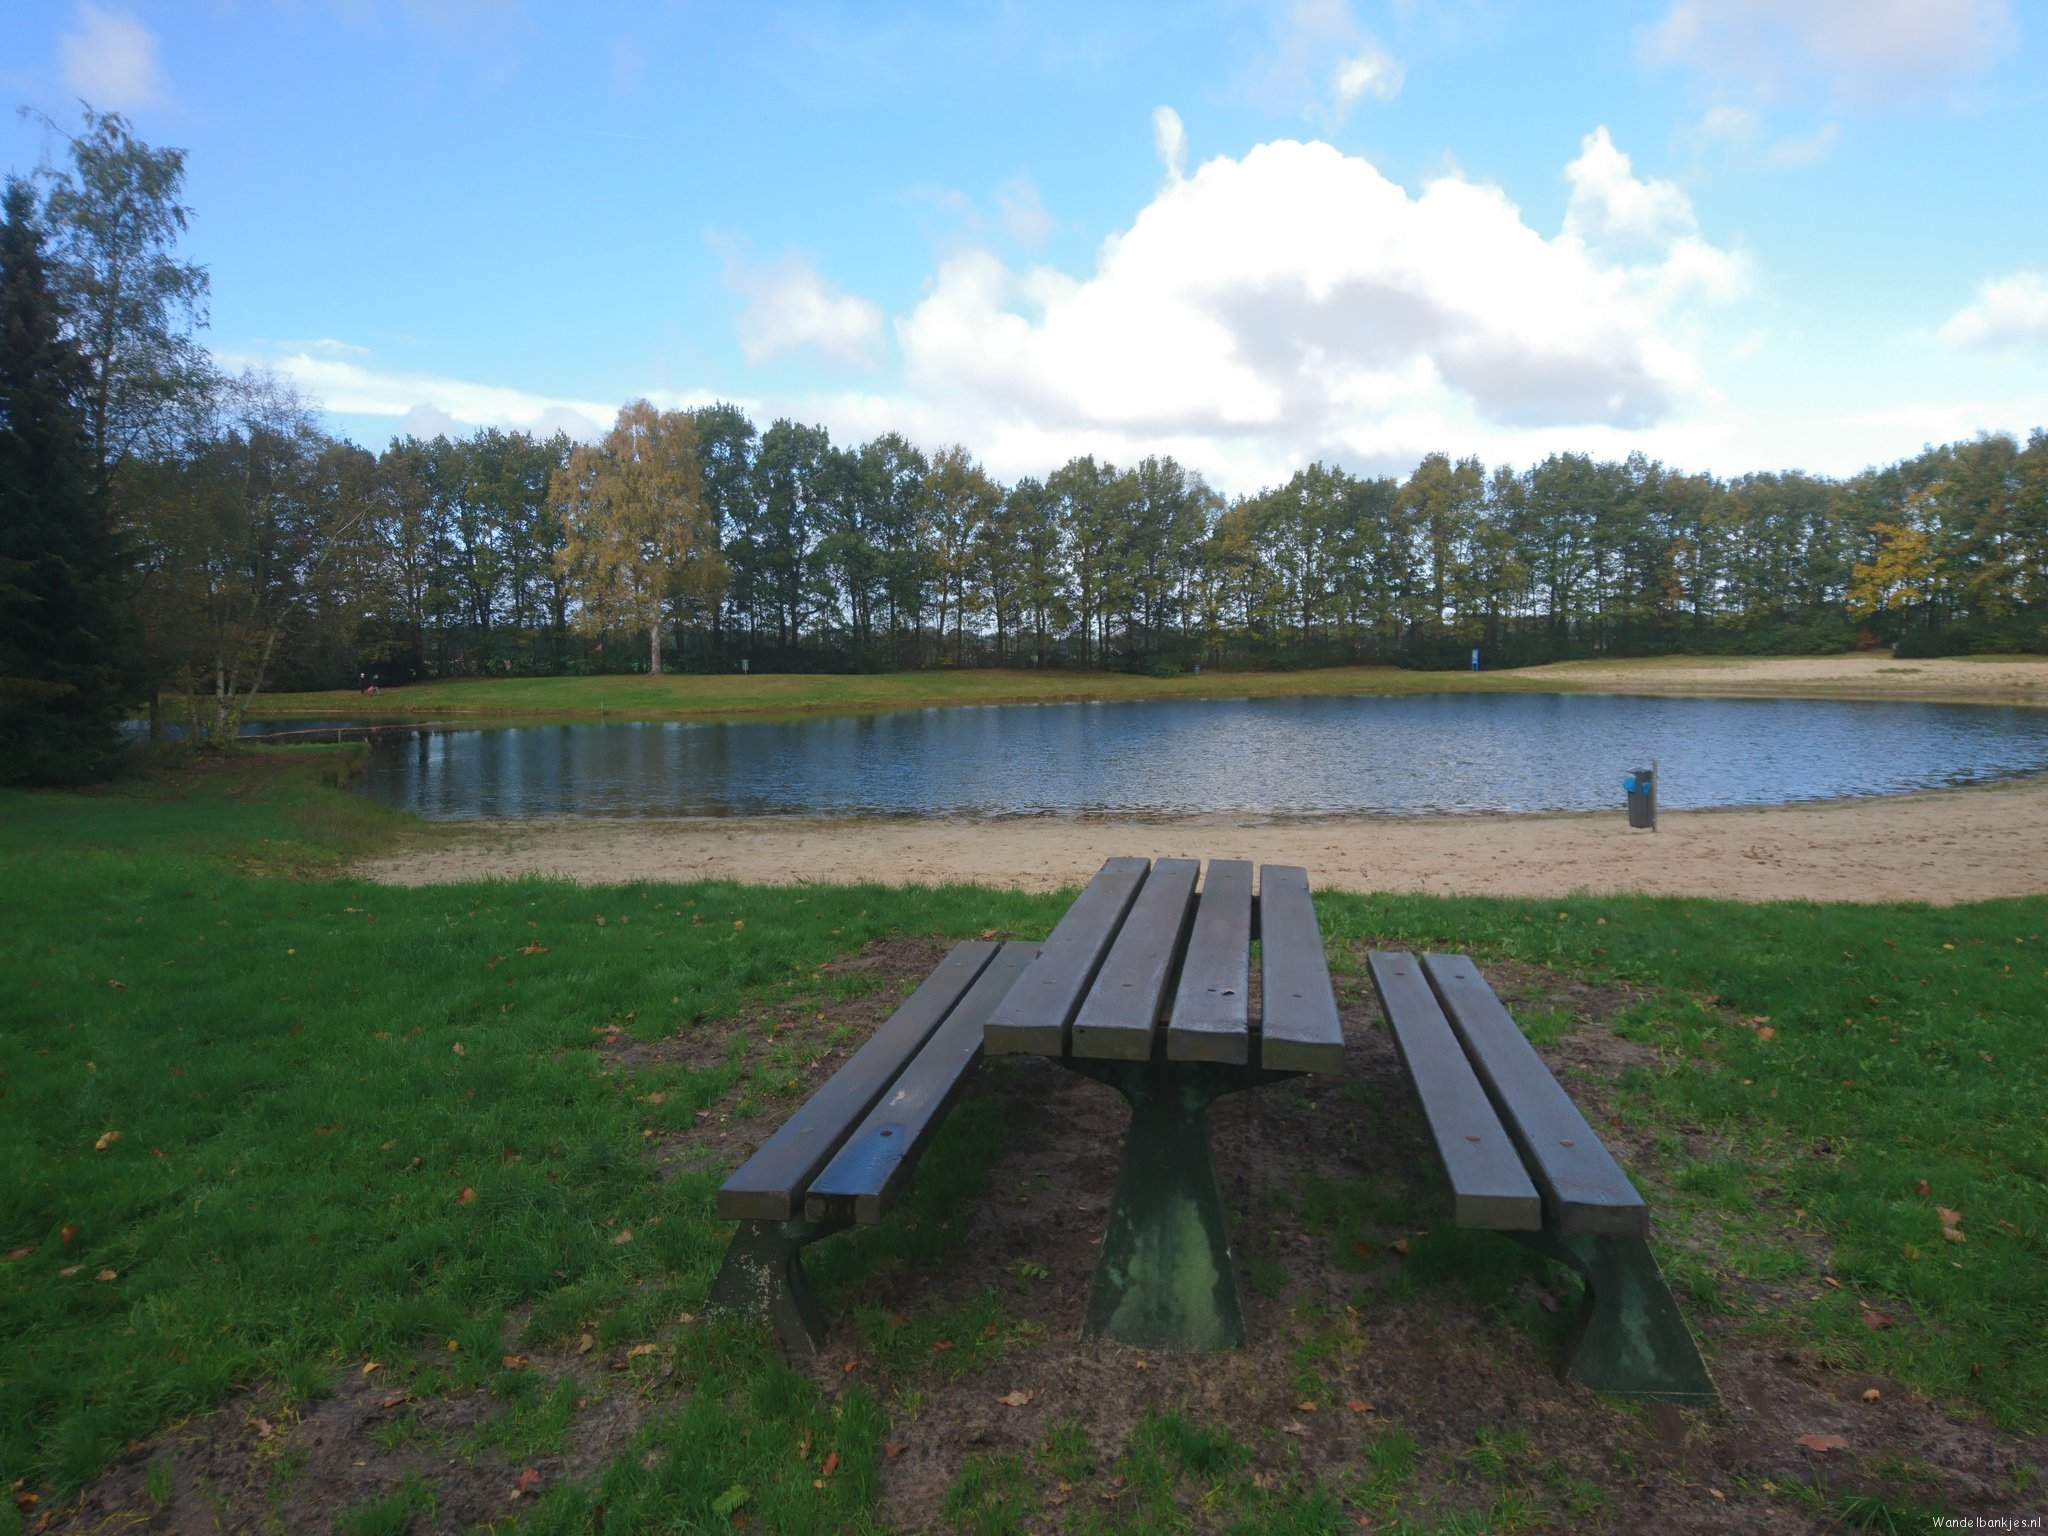 rt-walburgism-walking-benches-this-state-at-recreation lake-bellingwolde-in-the-beautiful-zone-westerwolde-by-noaberpad-httpst-coa